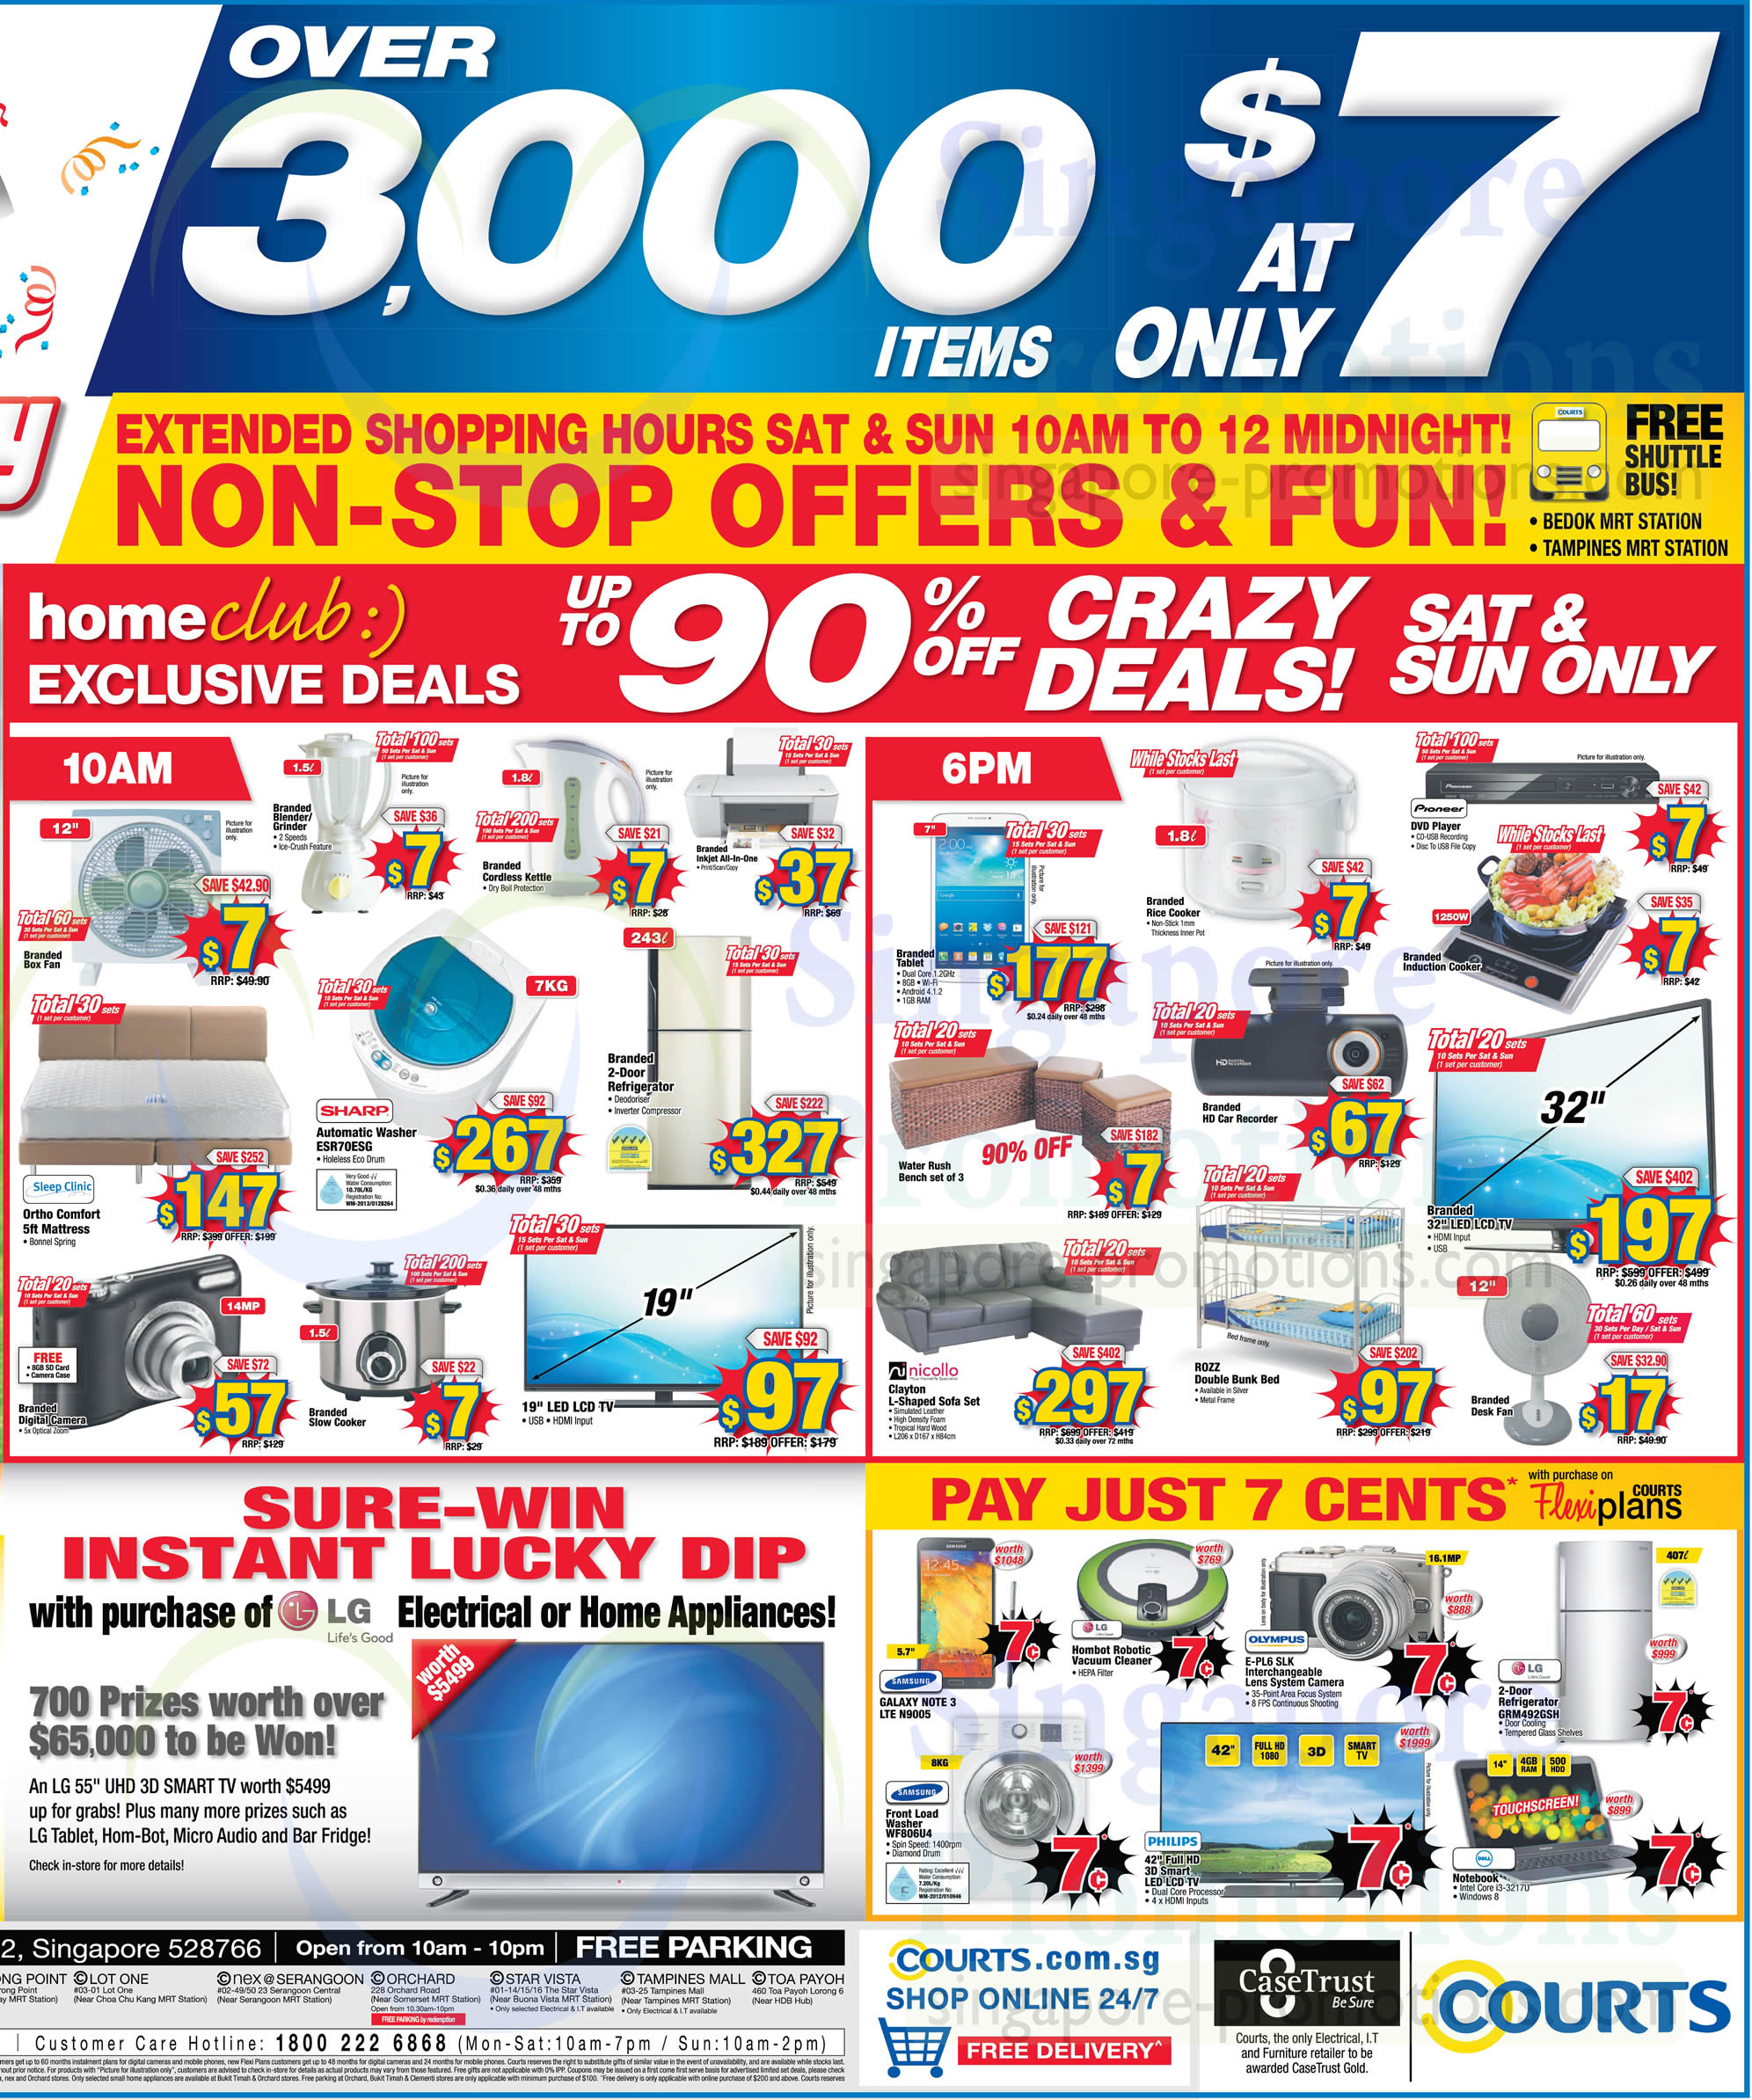 Home Club Exclusive Offers, Sure Win Lucky Dip, 7 Cents Offers